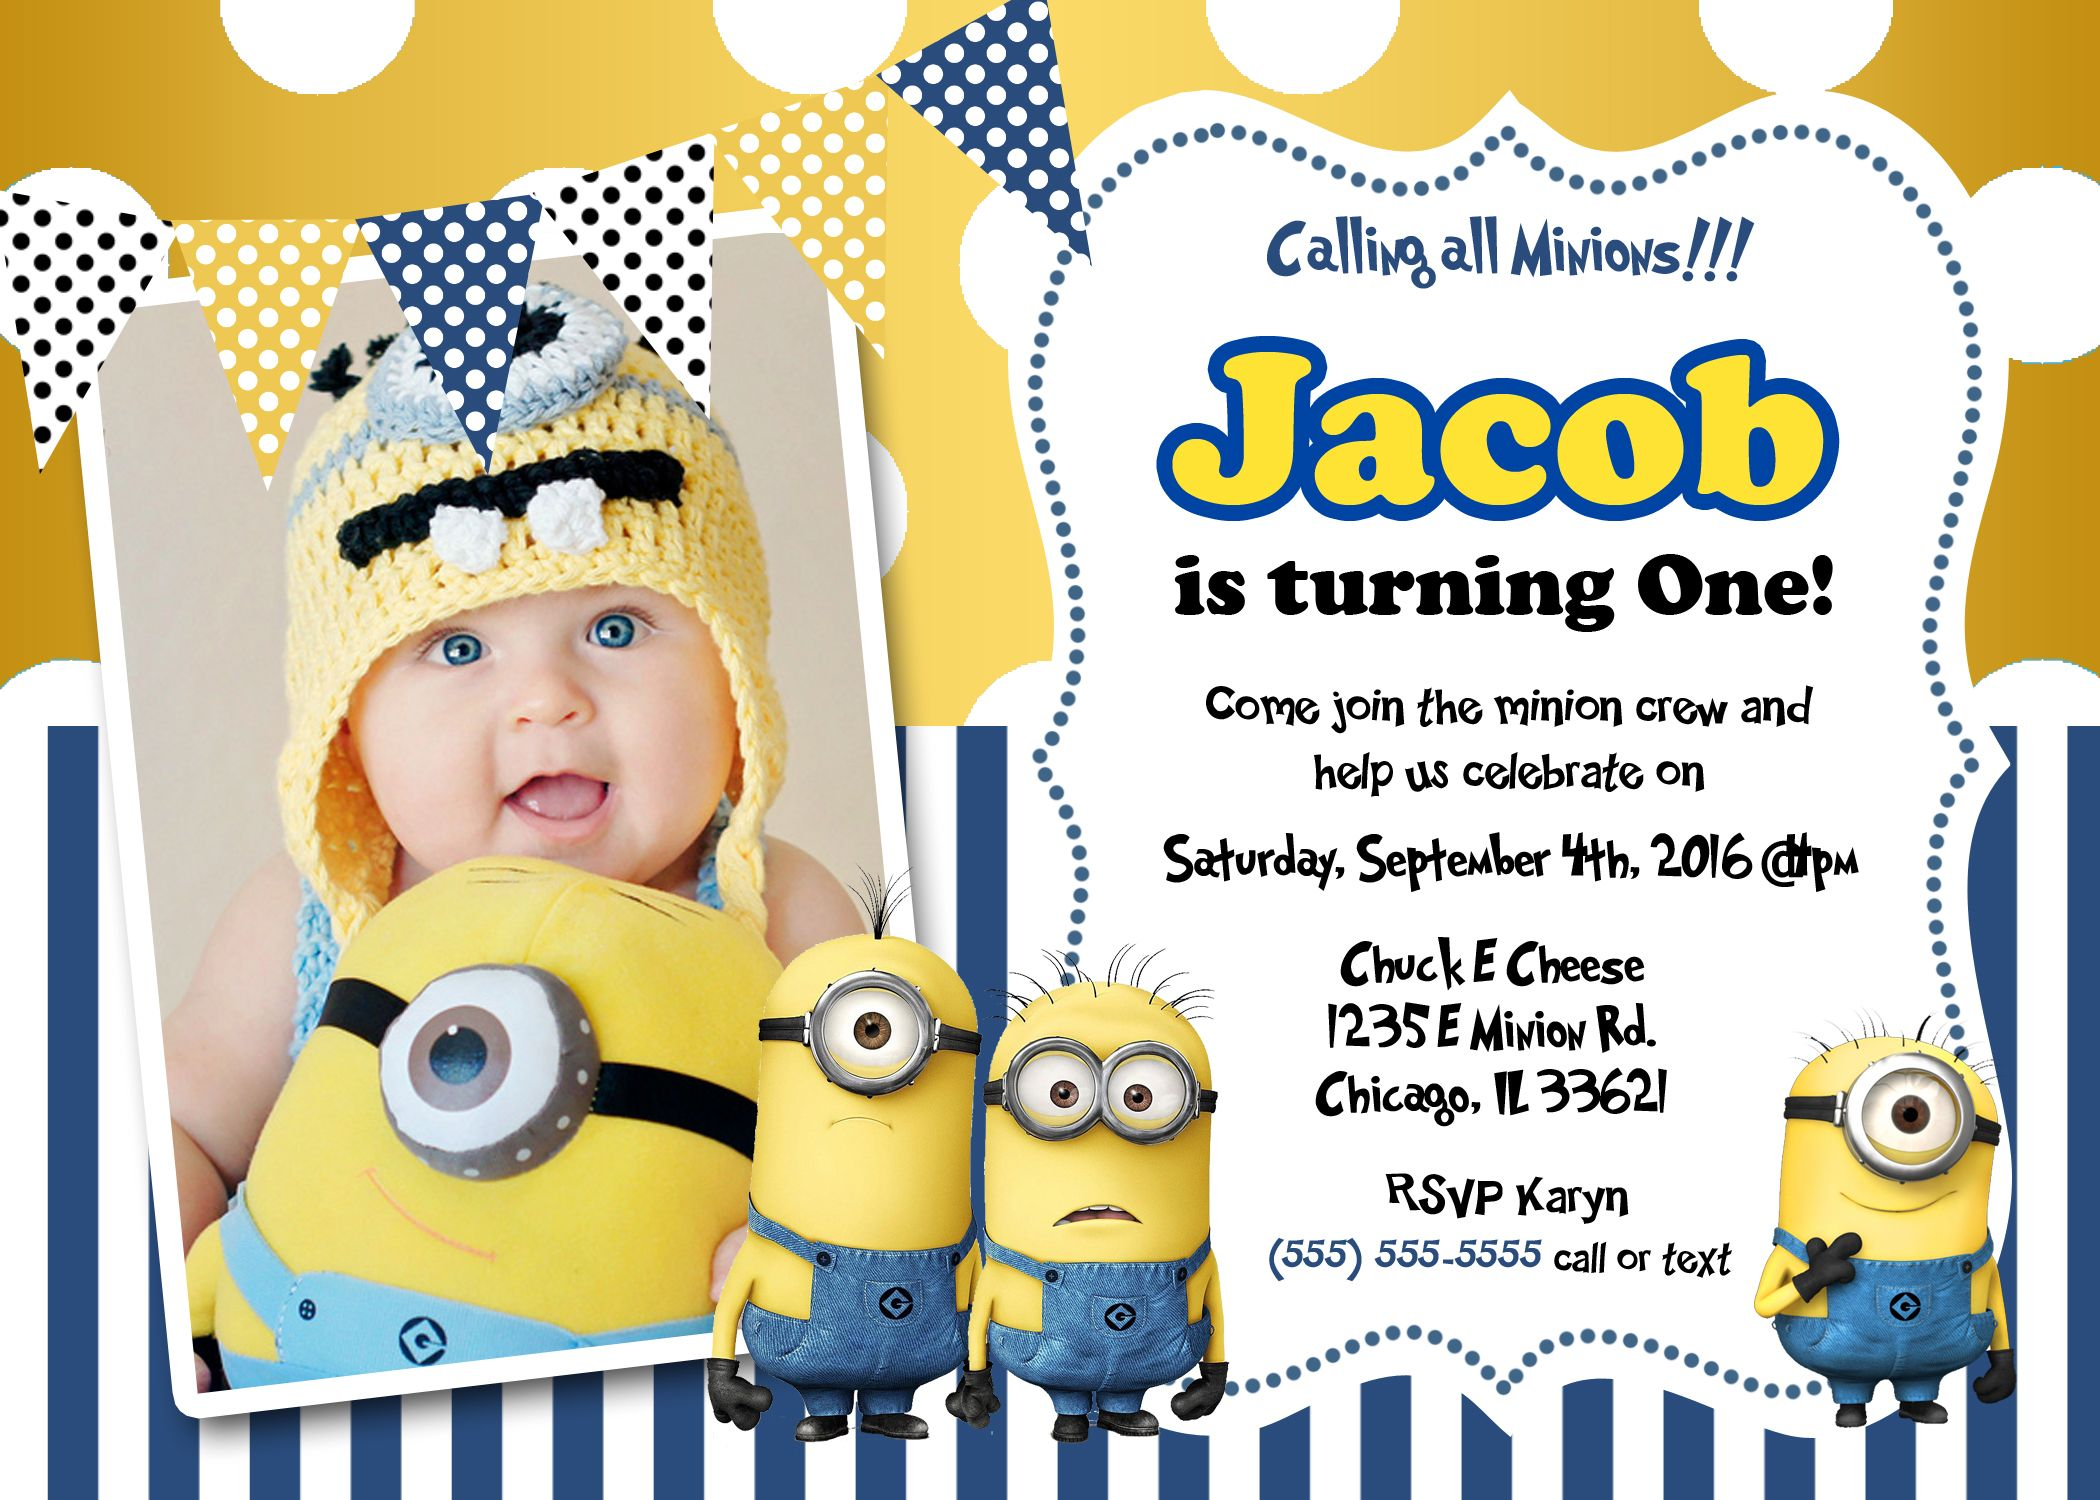 Create Own Minion Birthday Invitations Modern Templates - Party invitation template: minion birthday party invitations templates